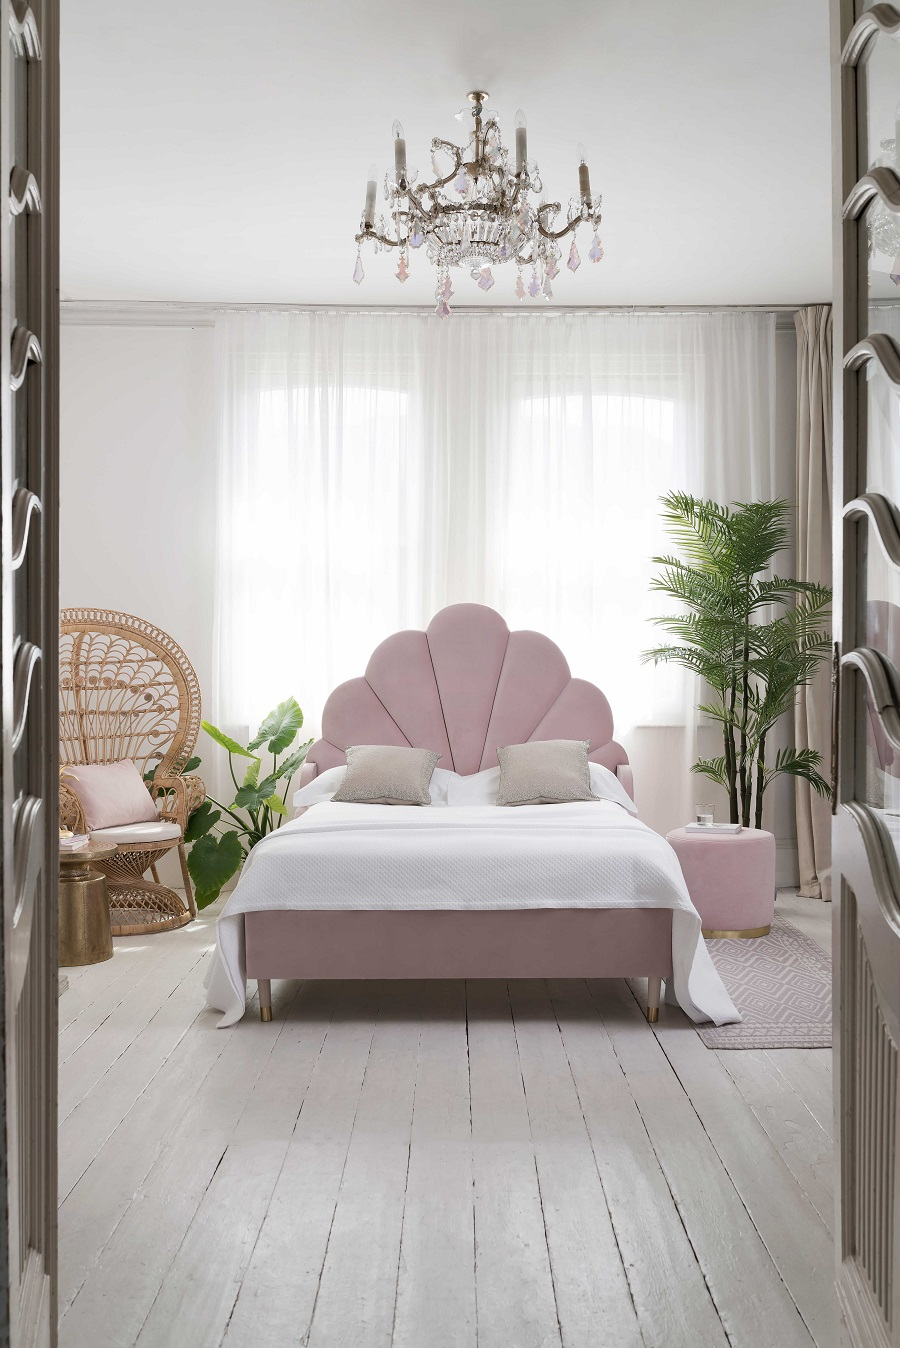 An Unashamedly Romantic Bedroom and How to Get the Look